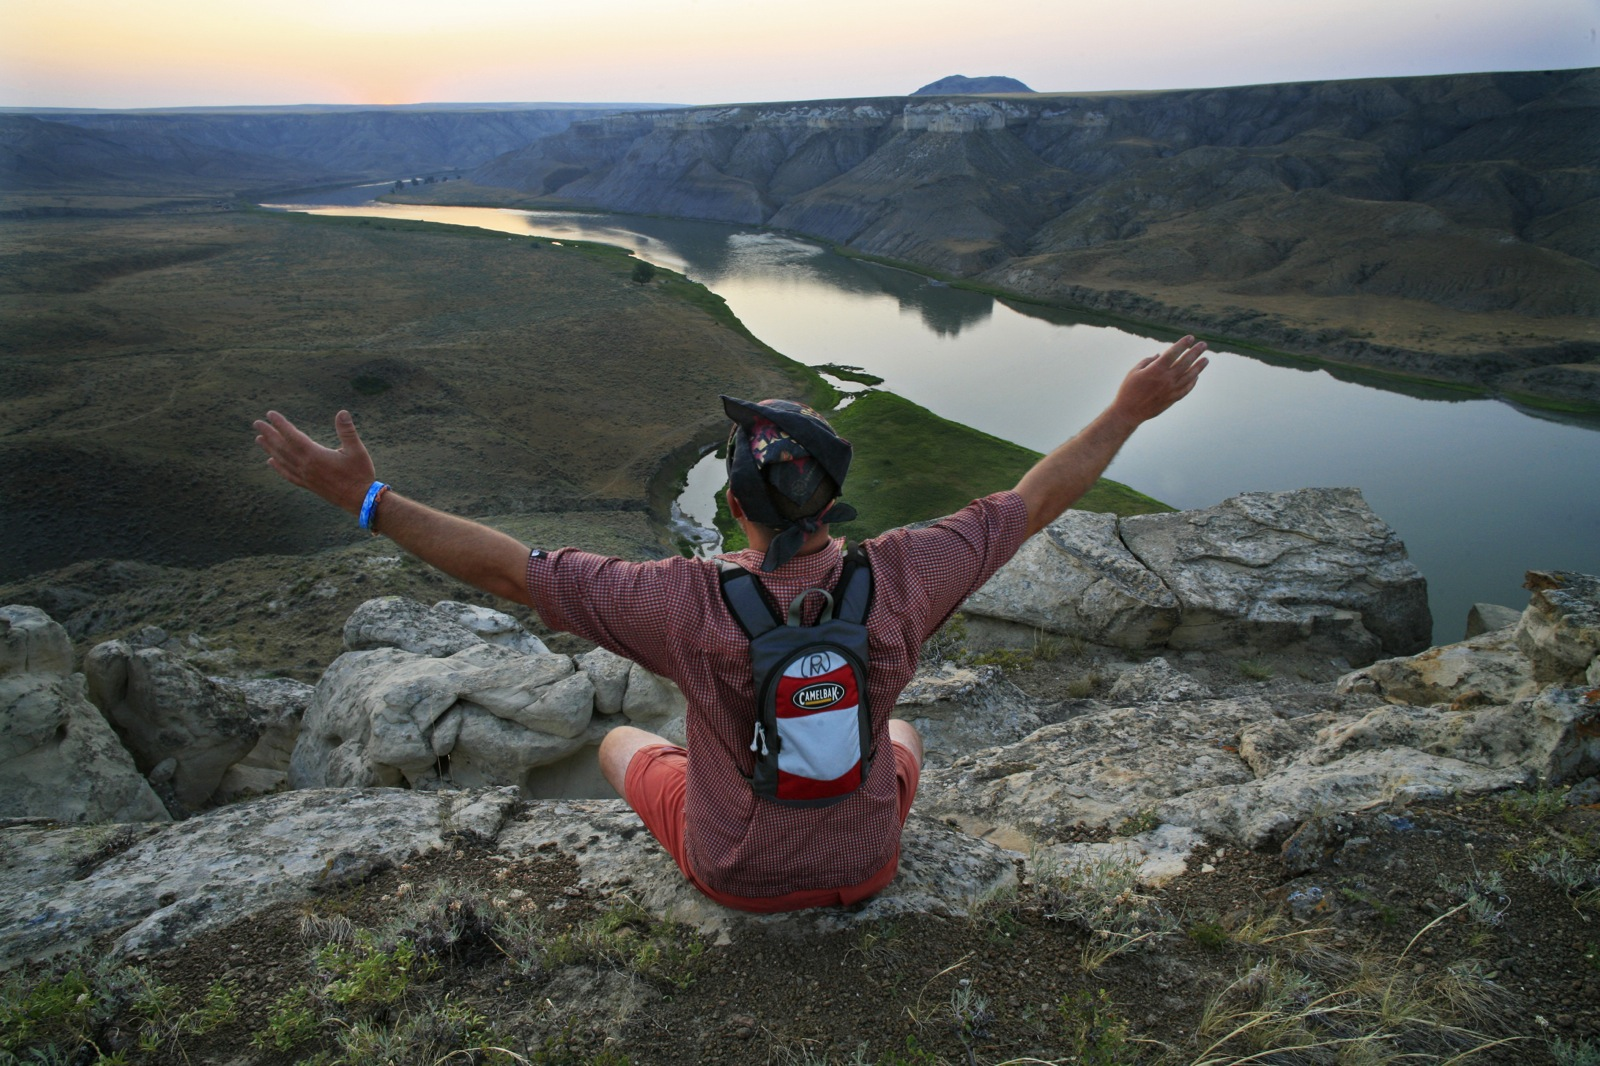 A participant sits high above Montana's Missouri River at sunset and lifts his arms in delight.